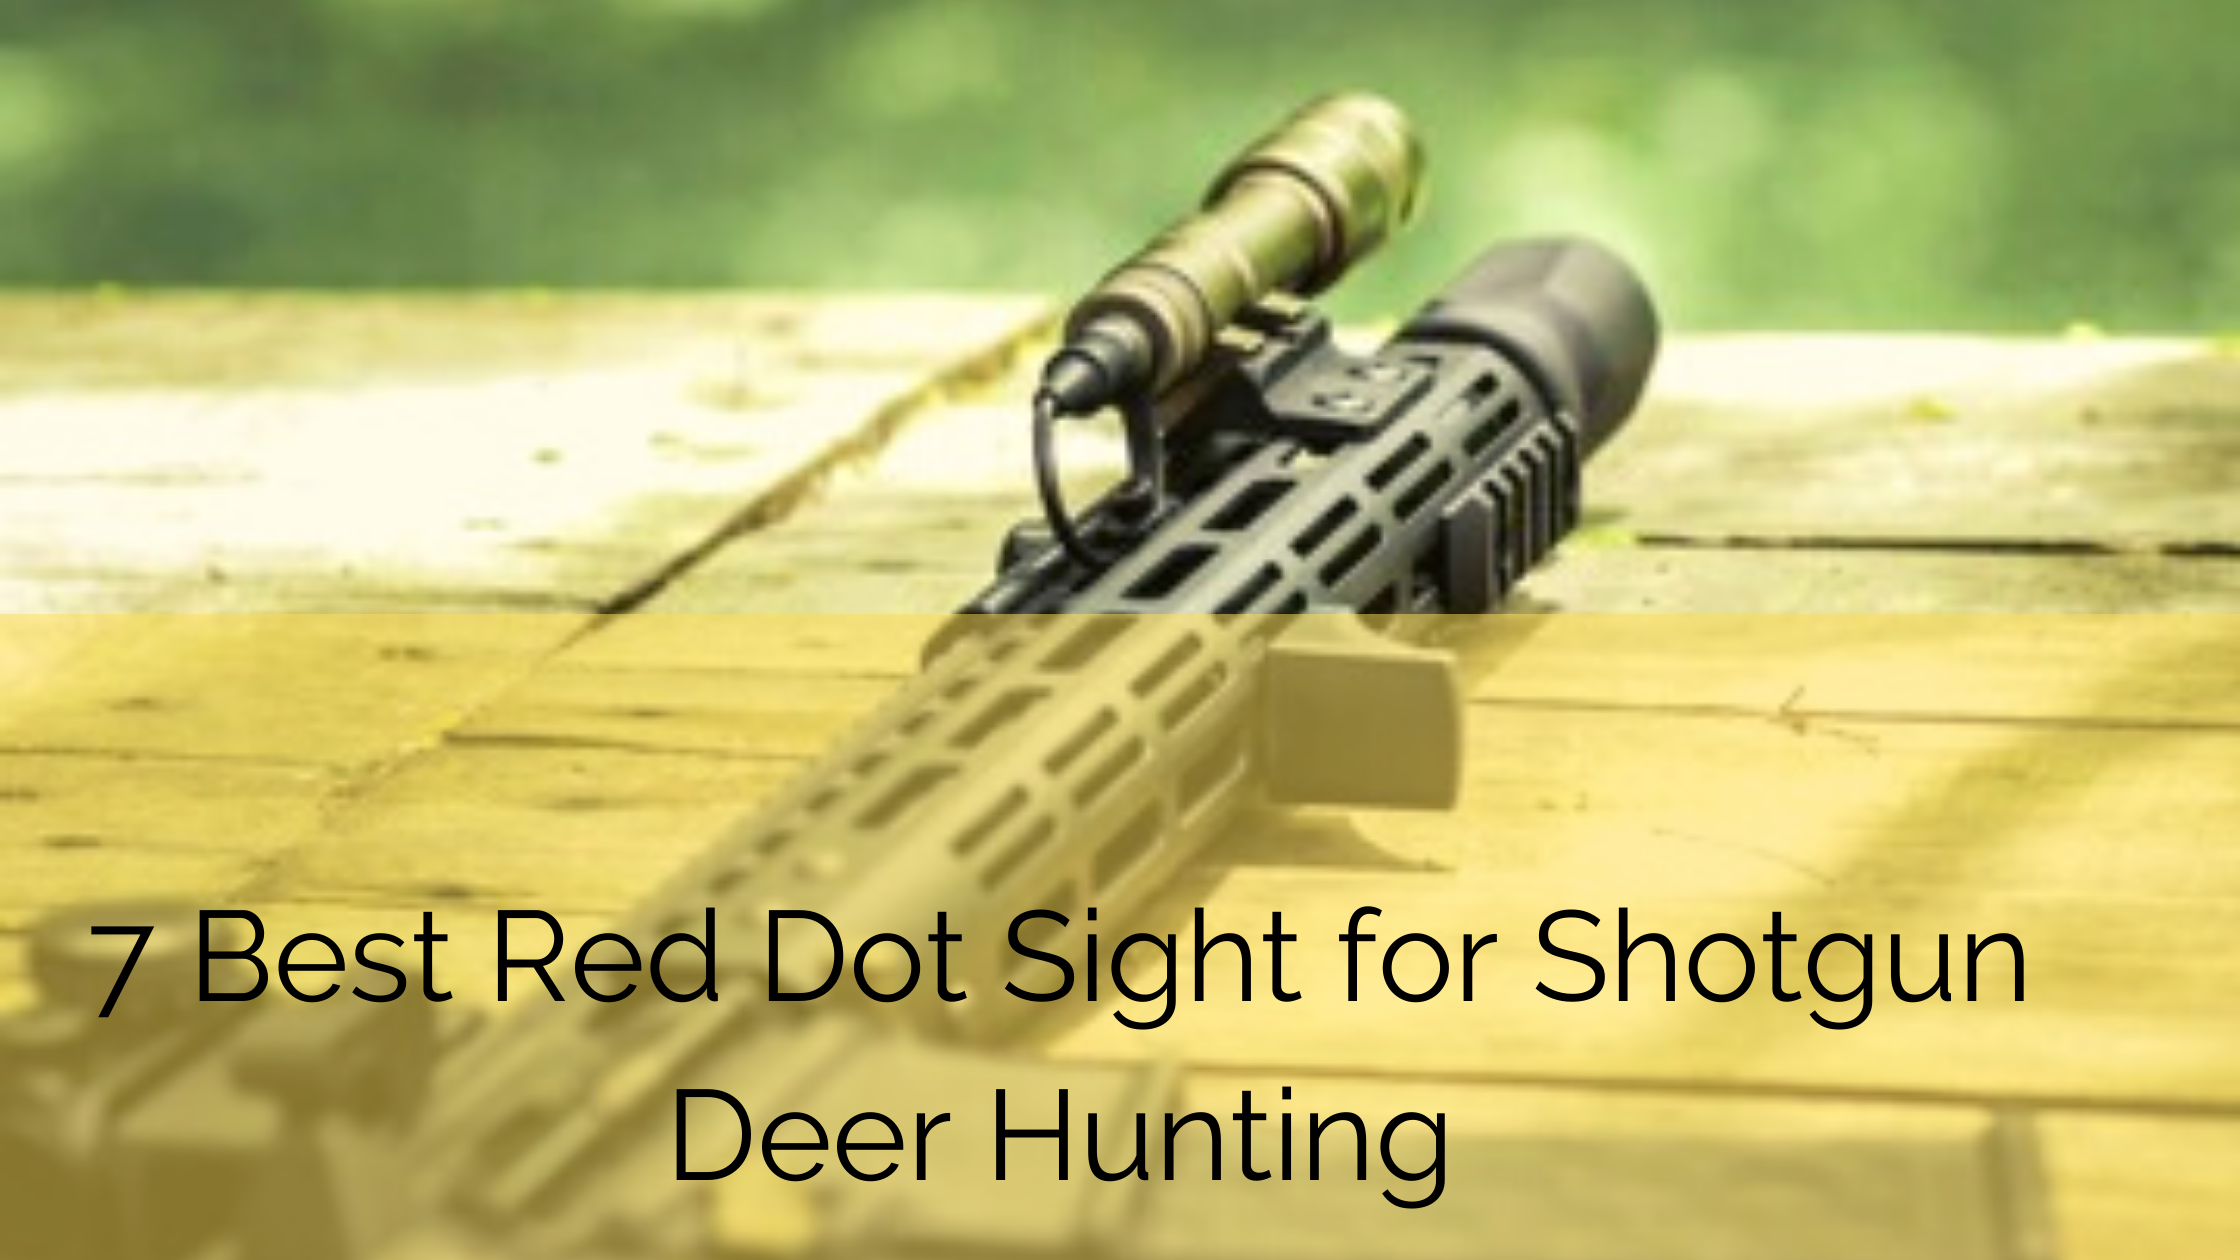 AR15 shotgun fitted with best red dot sight for deer hunting